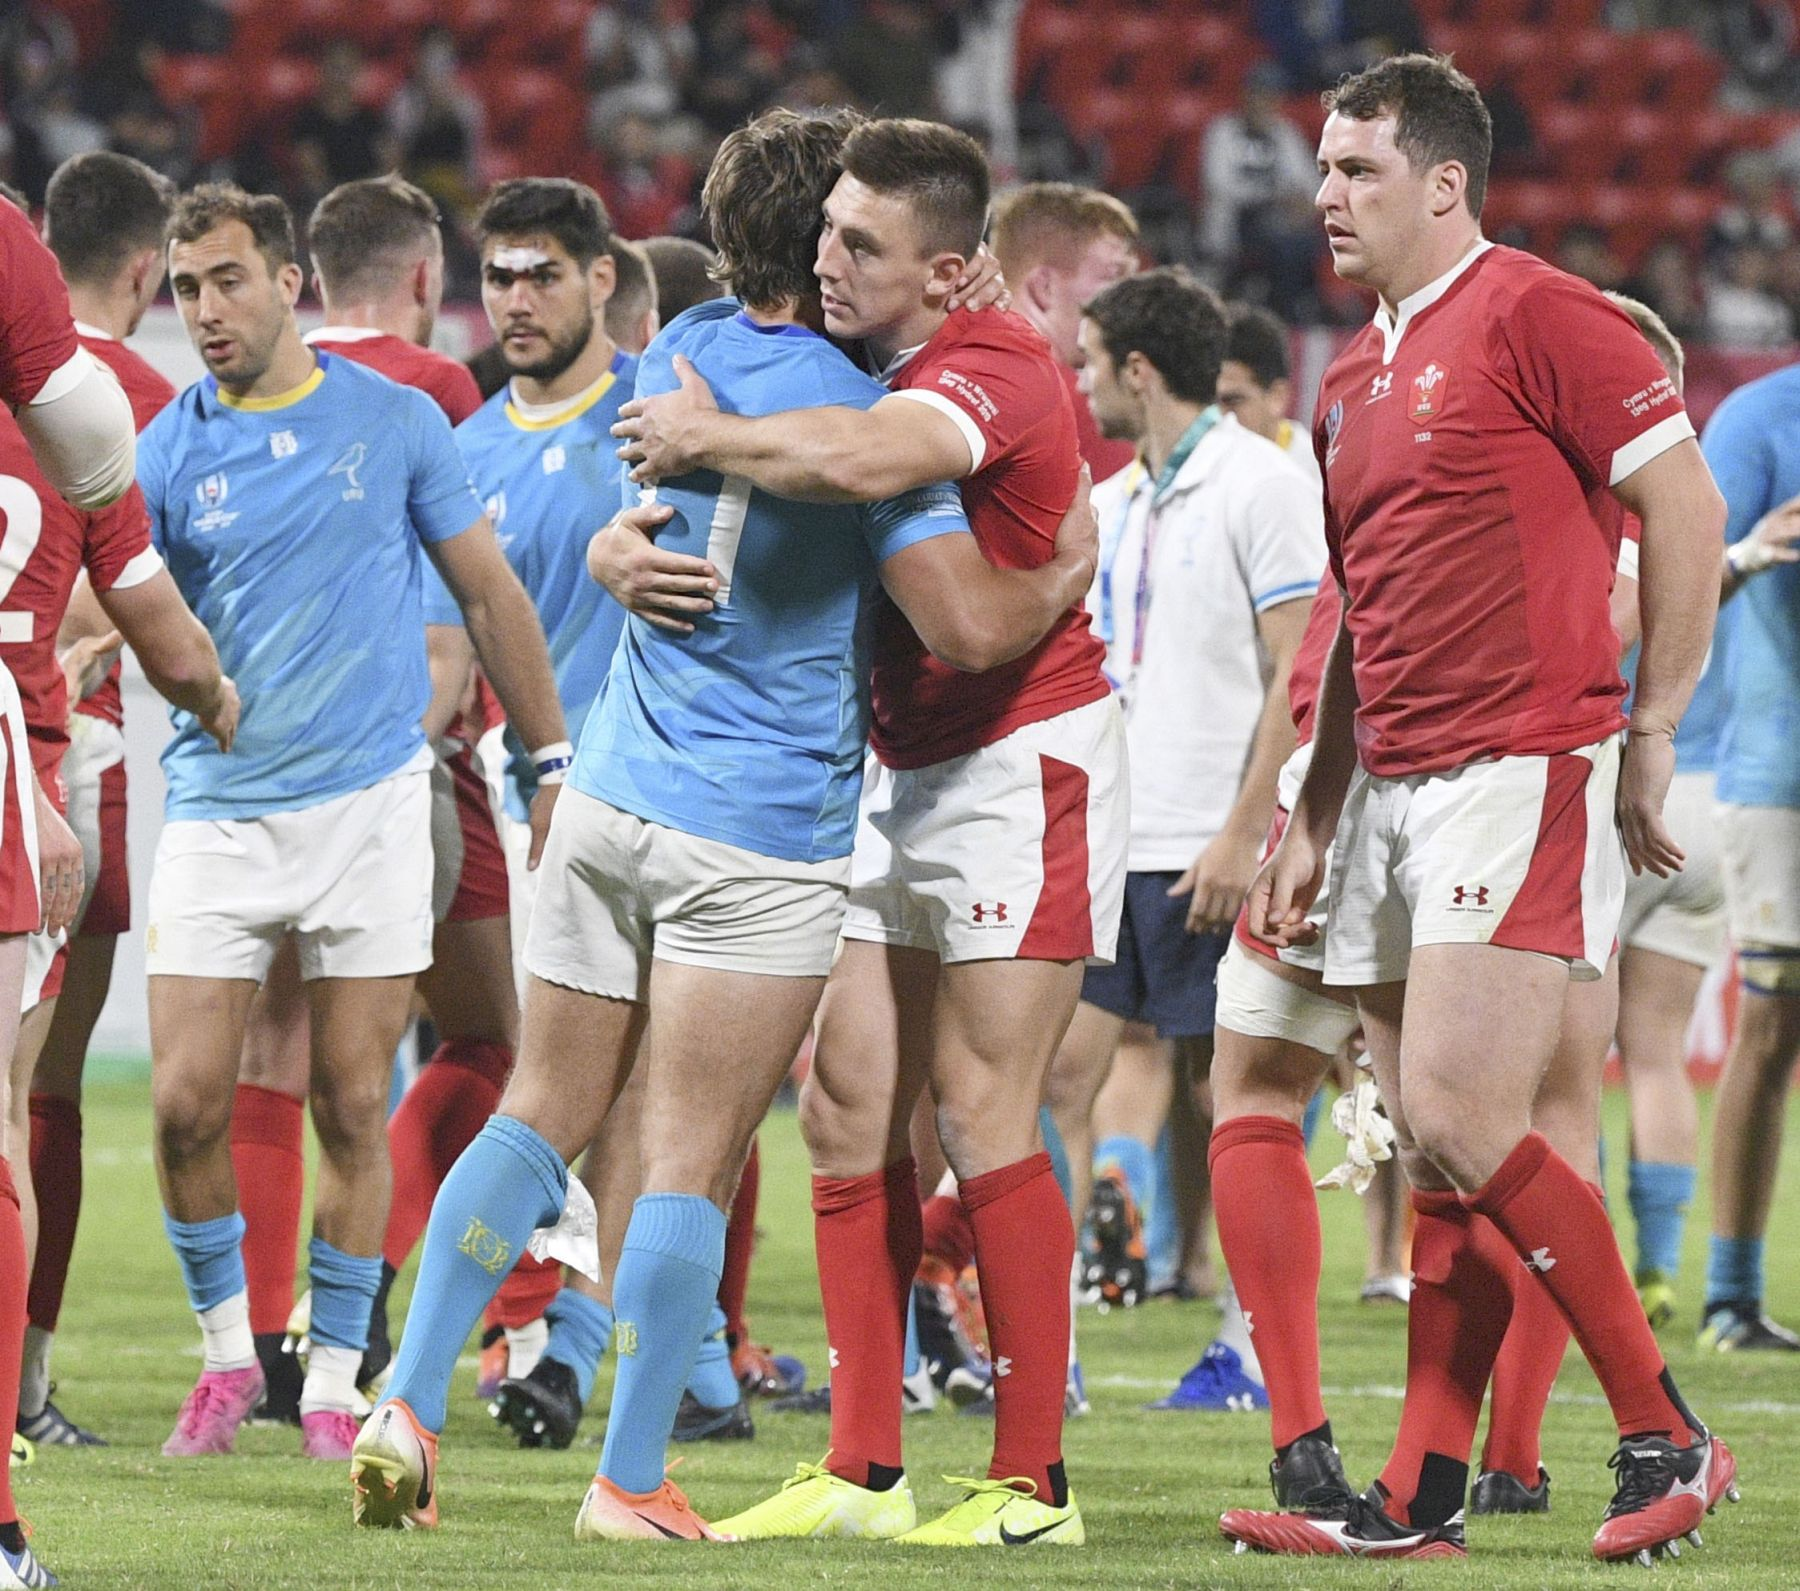 Rugby World Cup 2019 in Japan Wales Team 006